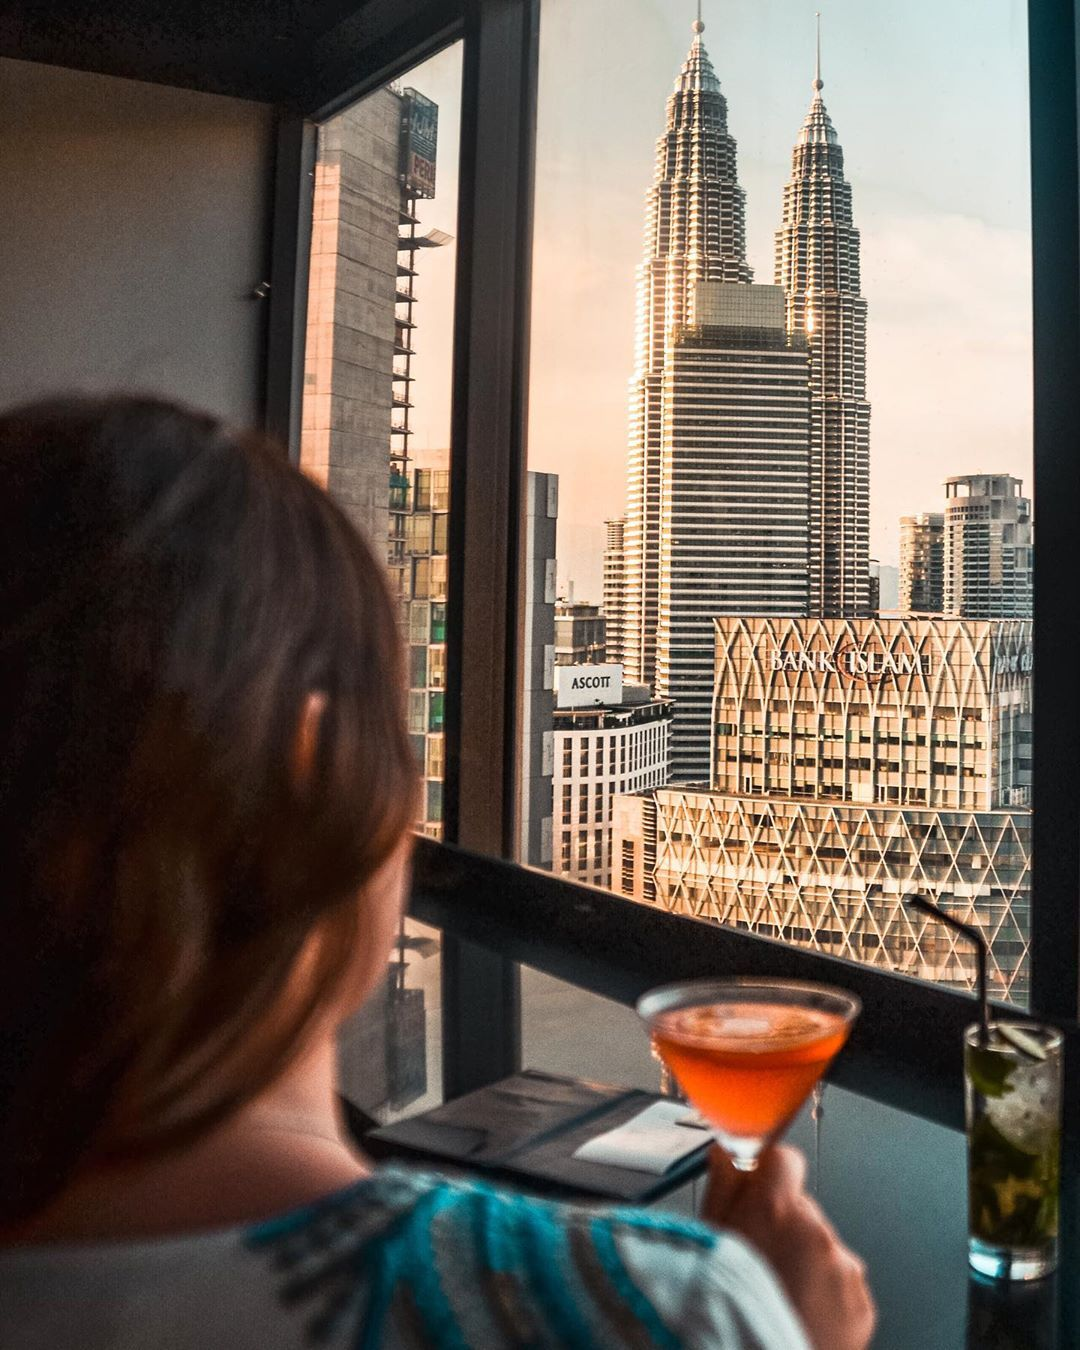 Travel Moments Food Auf Instagram Flashback To This Cosmo With A View In Beautiful Kuala Lumpur Mit Eine In 2020 Kuala Lumpur Malaysia Reise Cosmopolitan